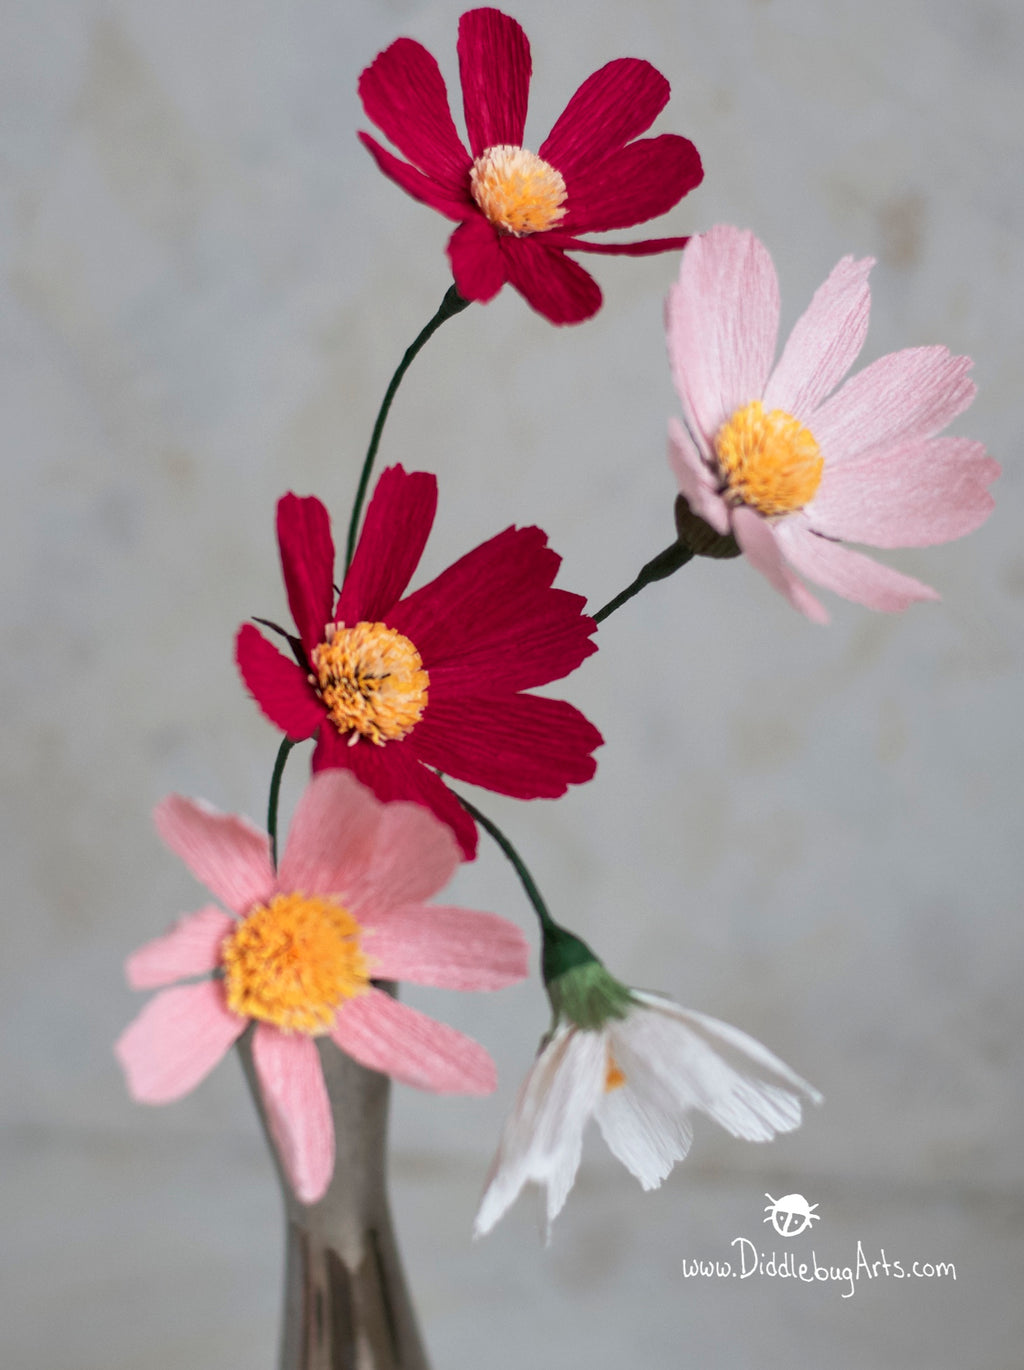 crepe paper cosmos flowers dark and light pinks